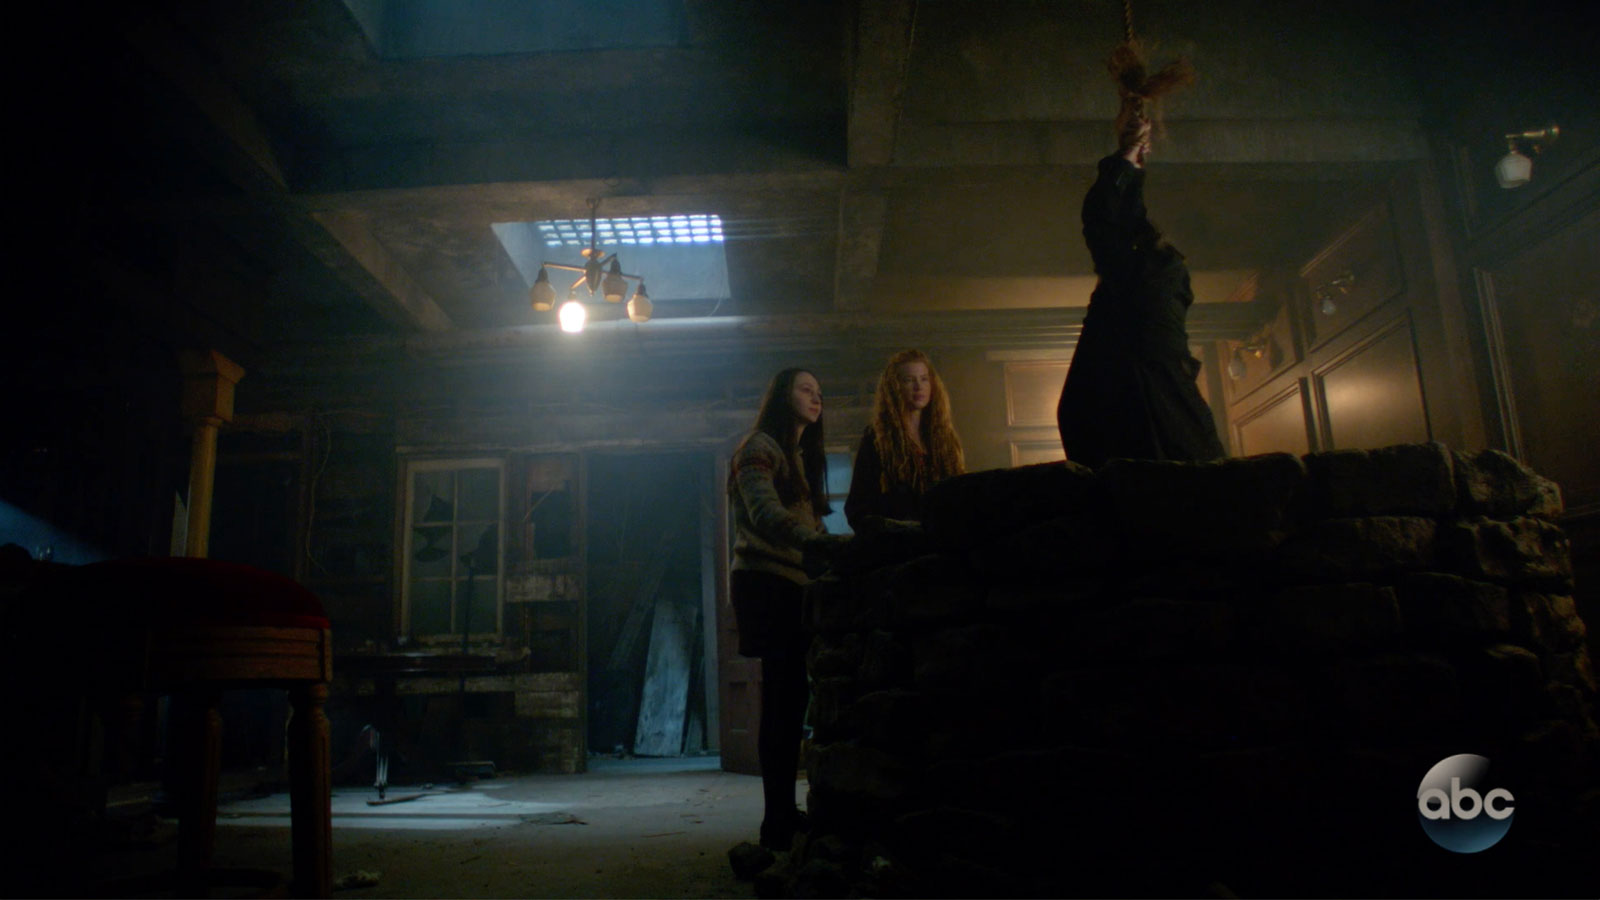 ONCE UPON A TIME: S7 - SEATTLE UNDERGROUND ABANDONED SPACE - SCREEN STILL